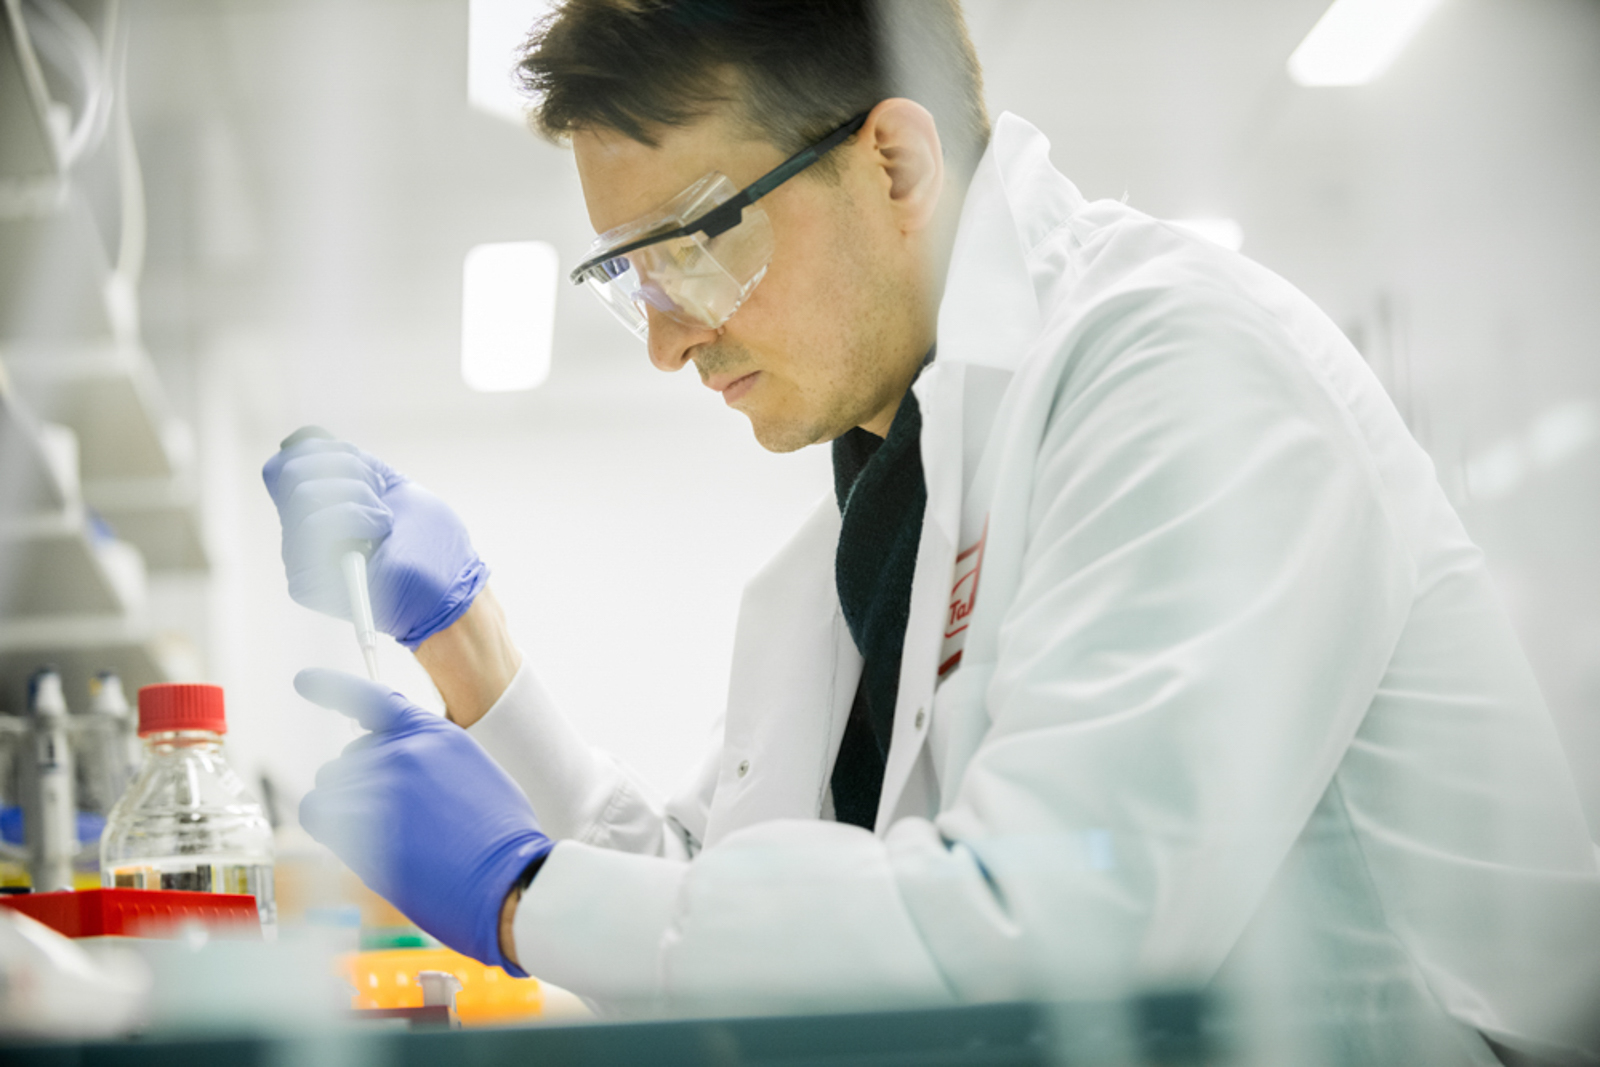 Lab technician working on test tubes, wearing protective gloves and goggles